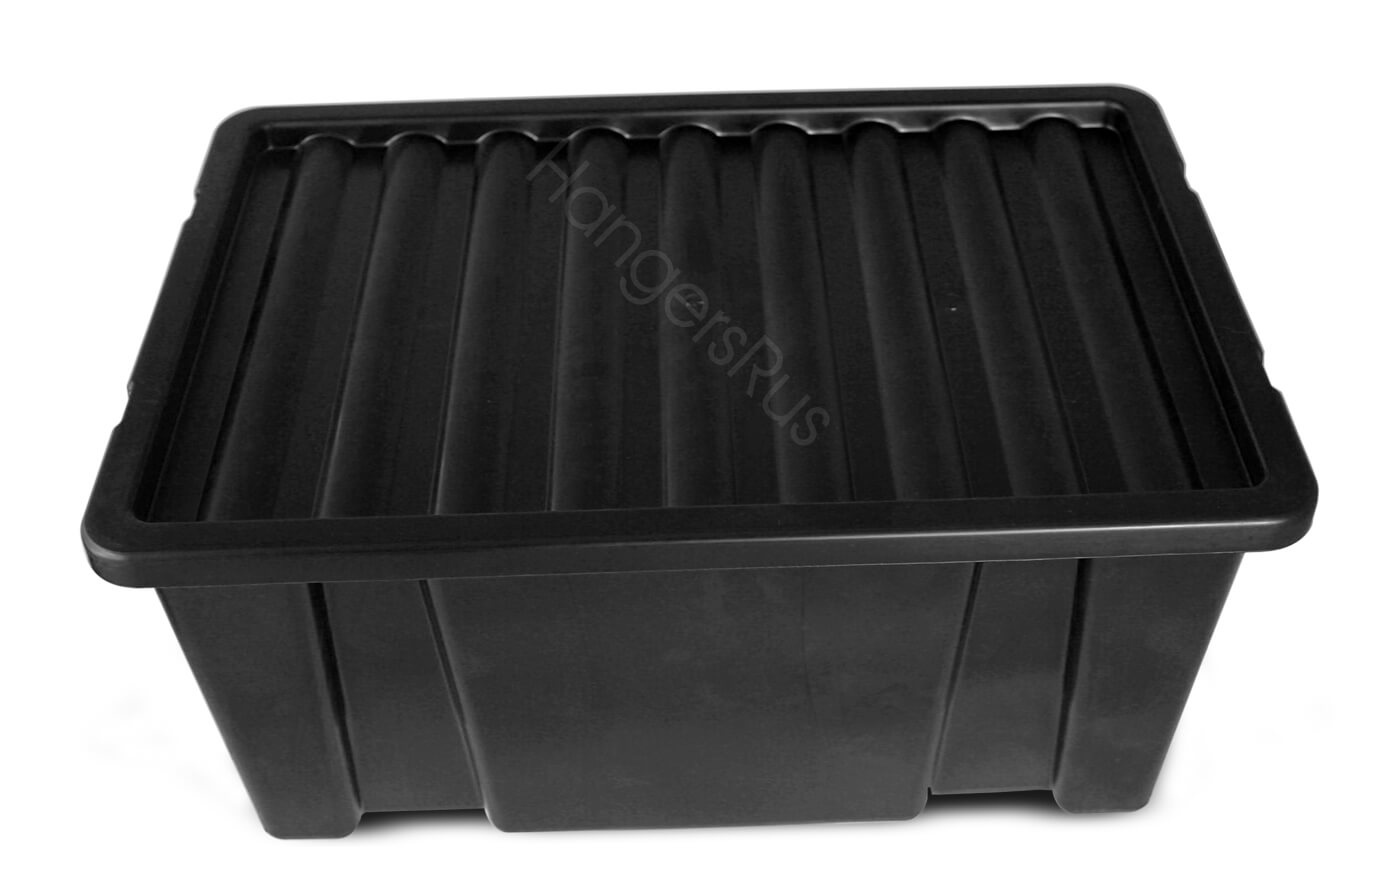 14 LITRE PLASTIC STORAGE BOX CONTAINER WITH LID BLACK Hangersrus